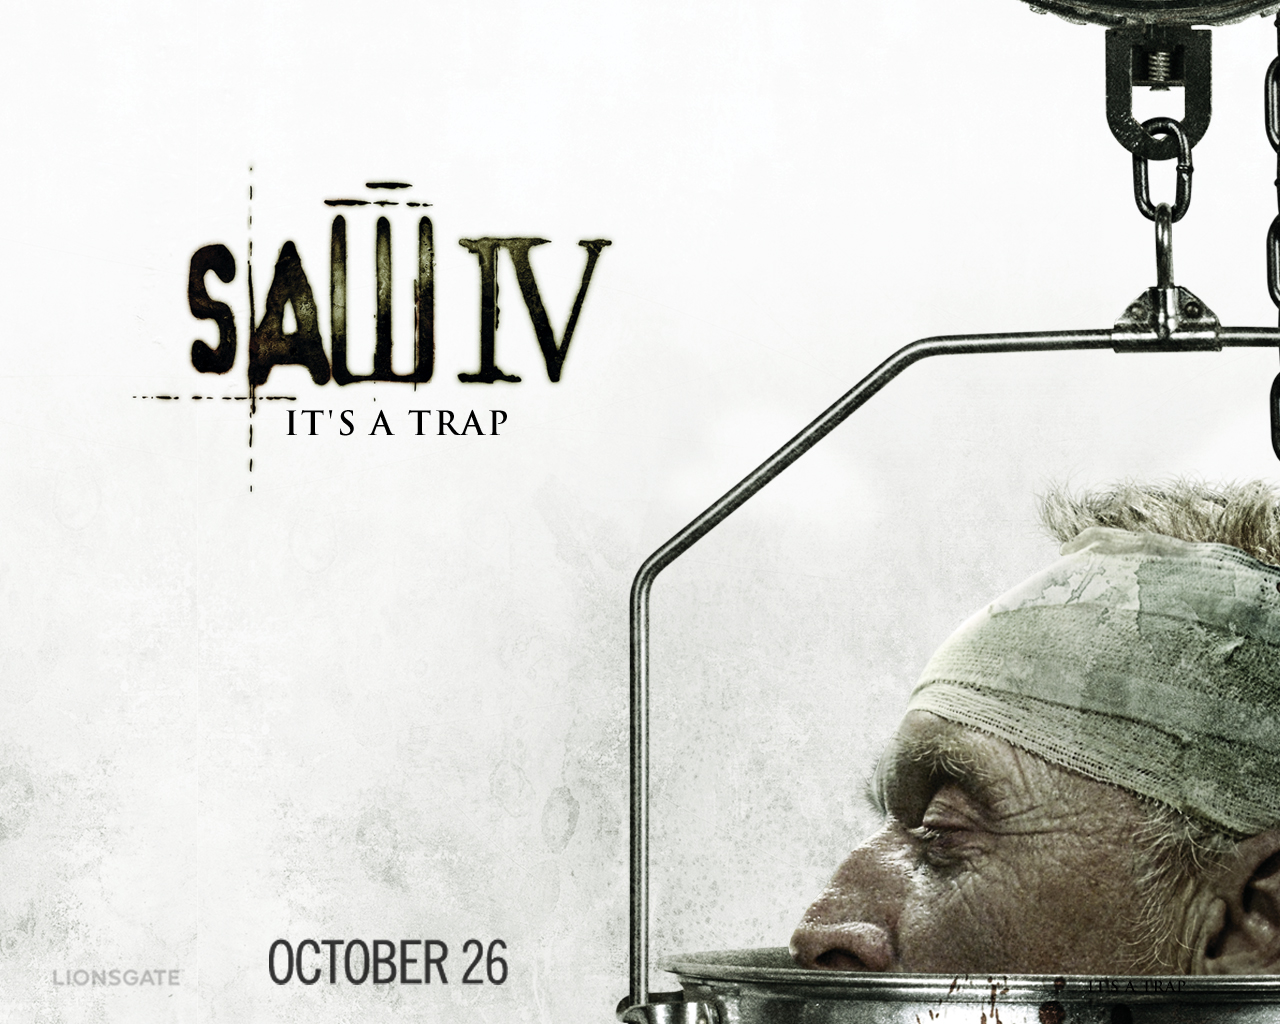 Tobin_Bell_in_Saw_IV_Wallpaper_1_800.jpeg